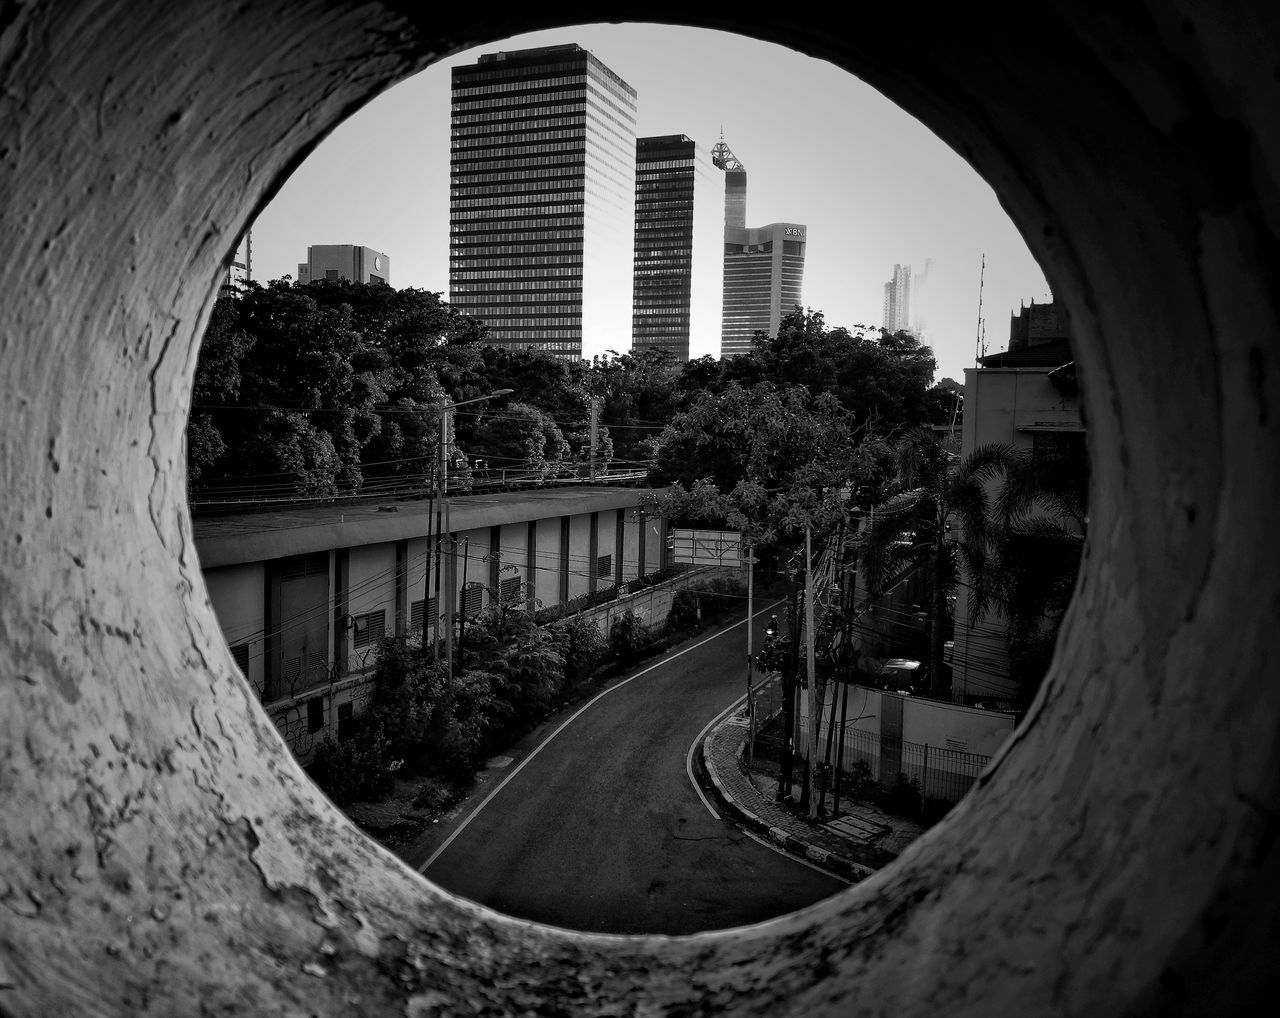 architekture in frame Architecture skyscraper building exterior Cityscape urban skyline outdoors City EyeEm Best Shots EyeEm Nature Lover eyeemphotography huwawie p9 business finance and industry sky_collection city landscape Cityscape huawei p9 leica indonesian photographers collection bnw_society bw_indonesia bw_collection beauty in Nature bw_crew bw_photooftheday bw_shotz bnw_collection